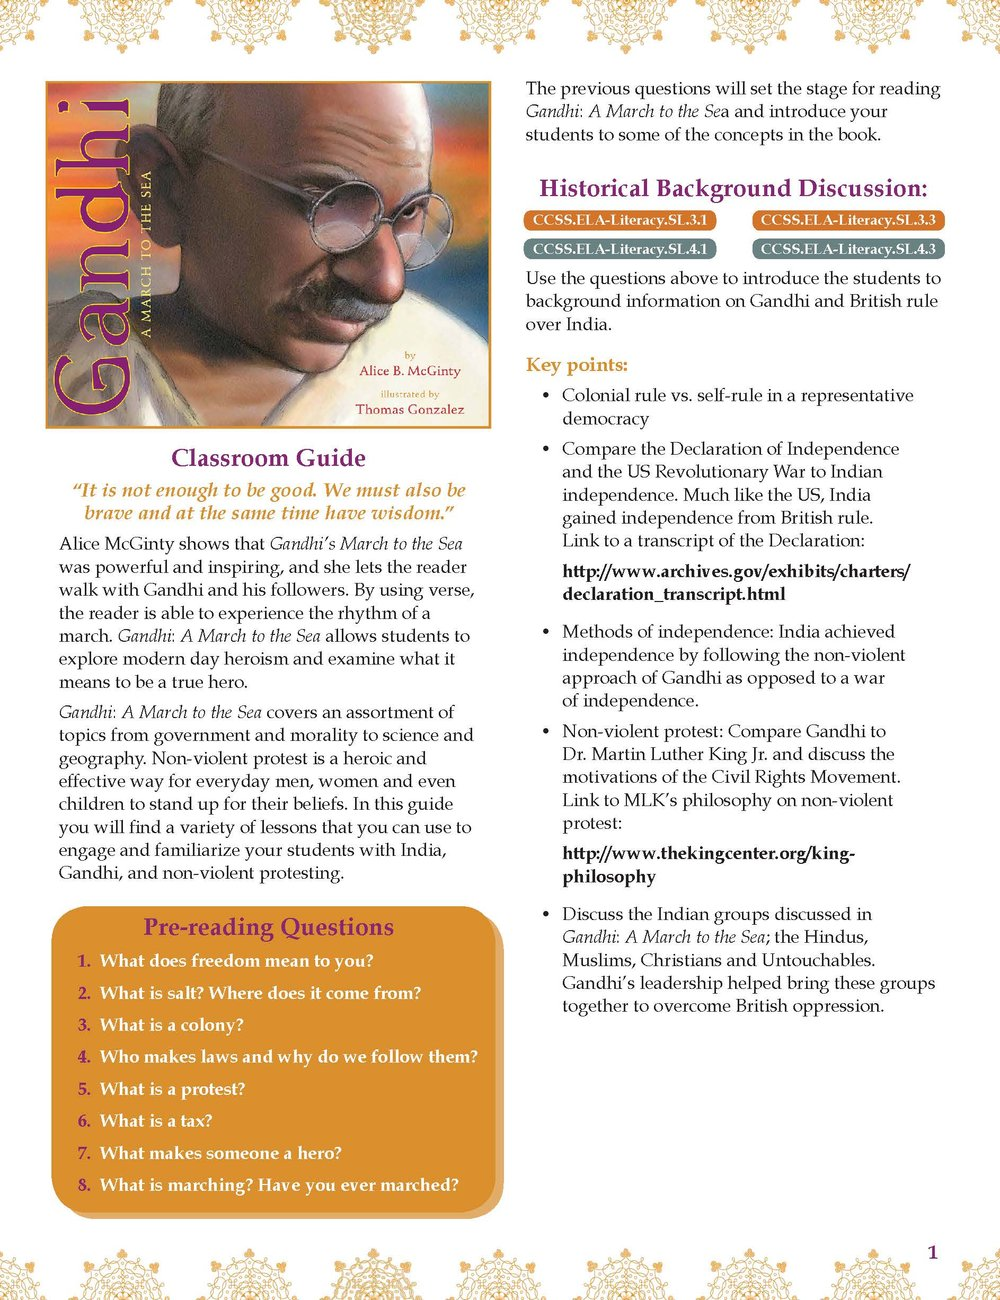 Gandhi: A March to the Sea - Includes writing exercises, lessons, discussions, and questions.